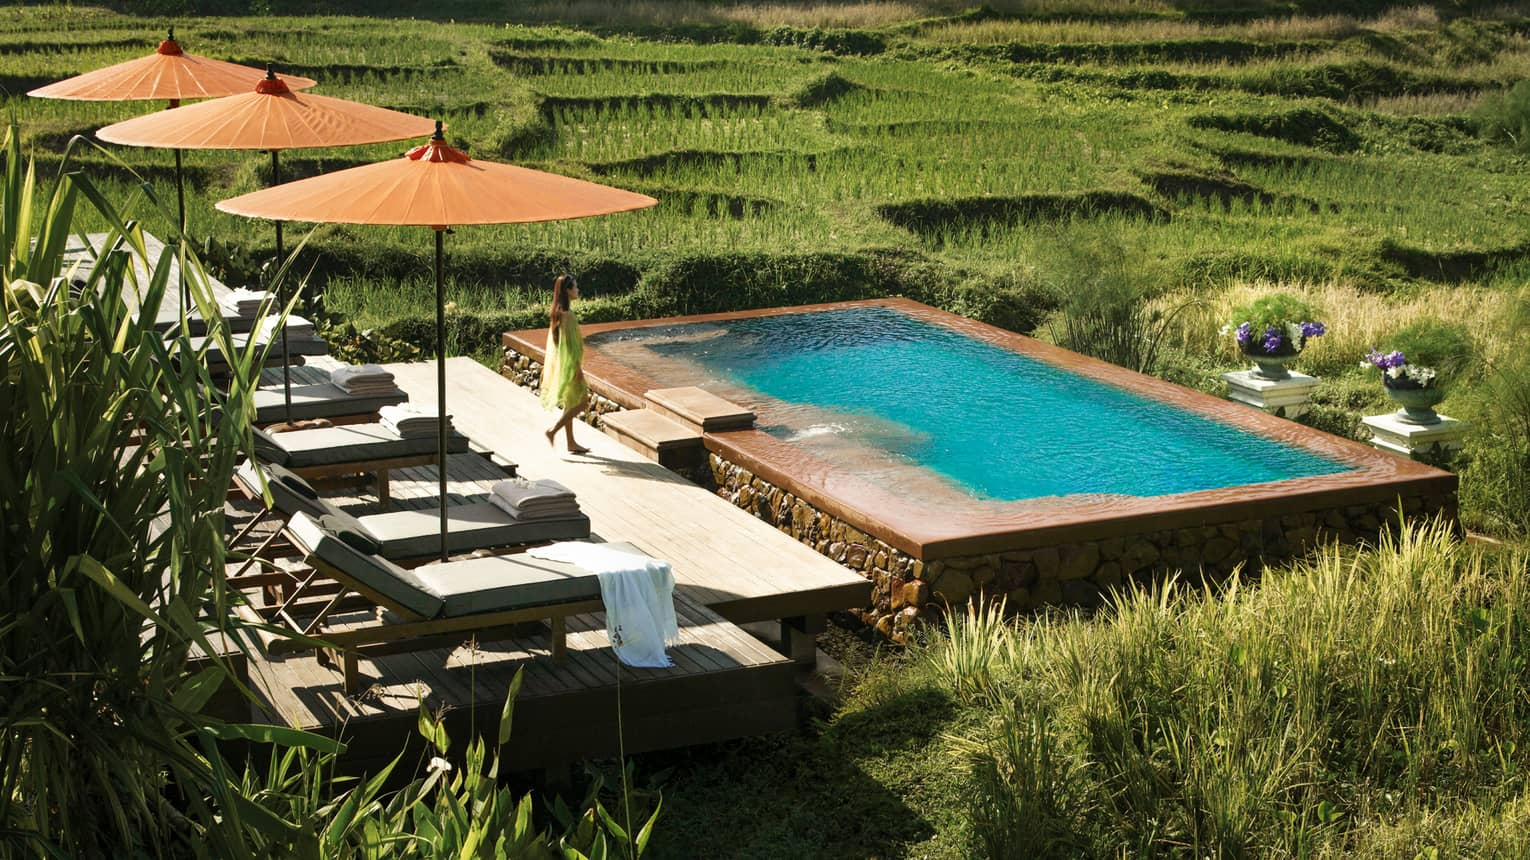 Woman in flowing dress walks past three patio umbrellas to infinity pool in rice plantation